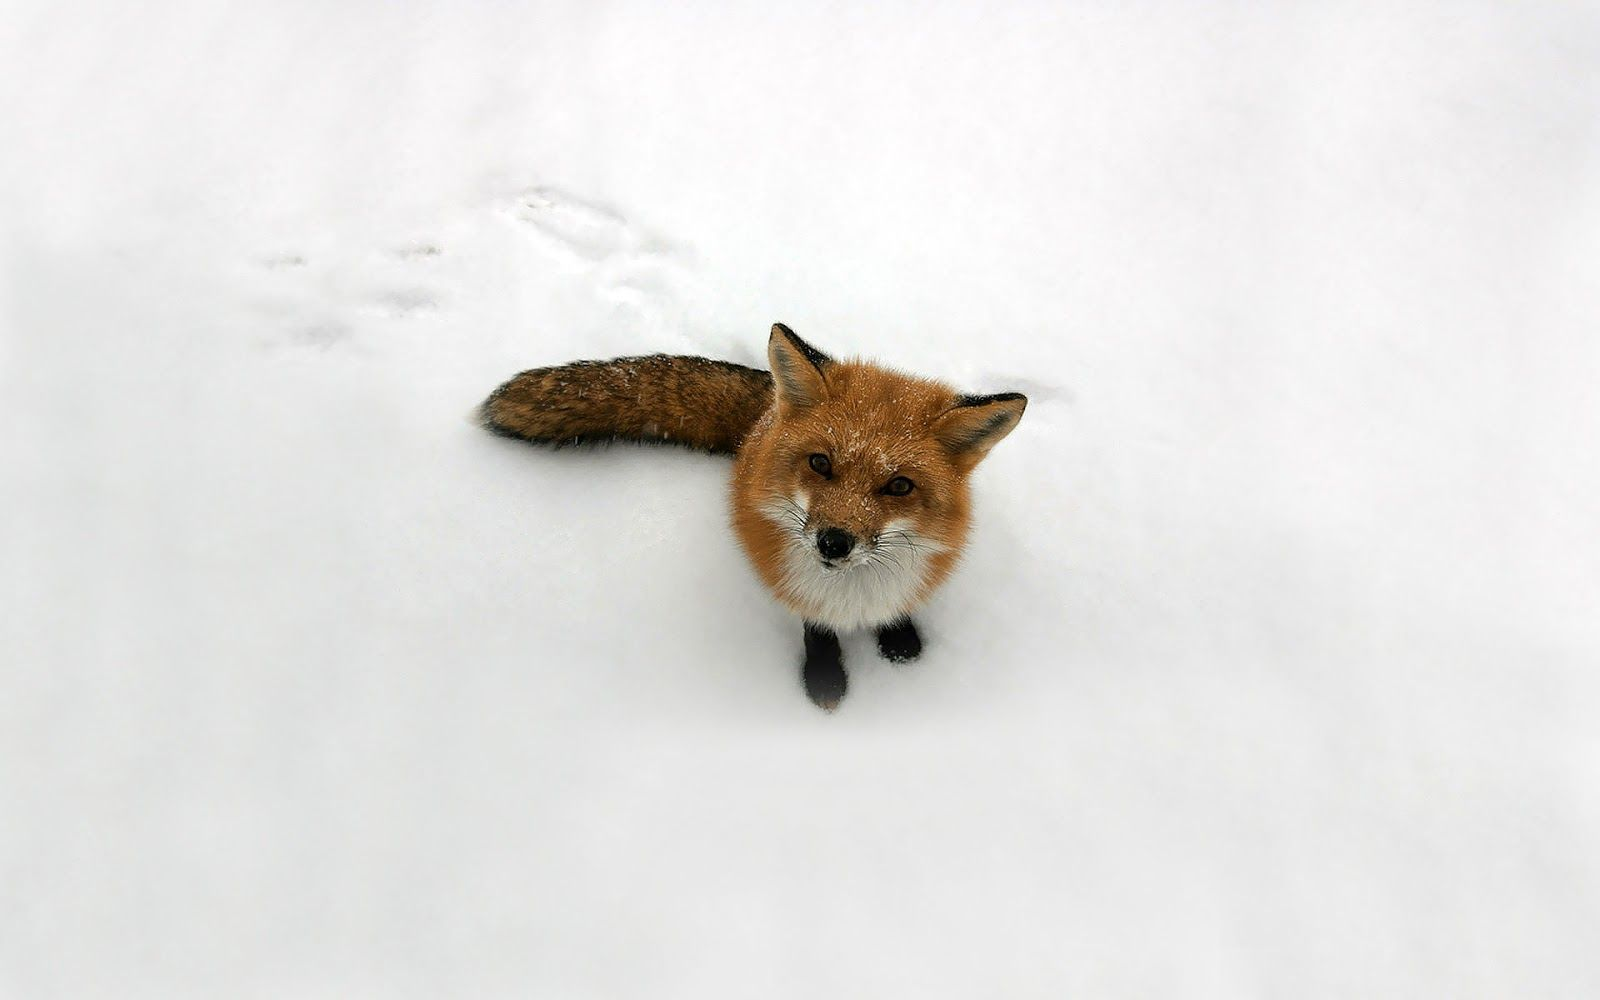 Little fox snow free wallpapers for download (With images